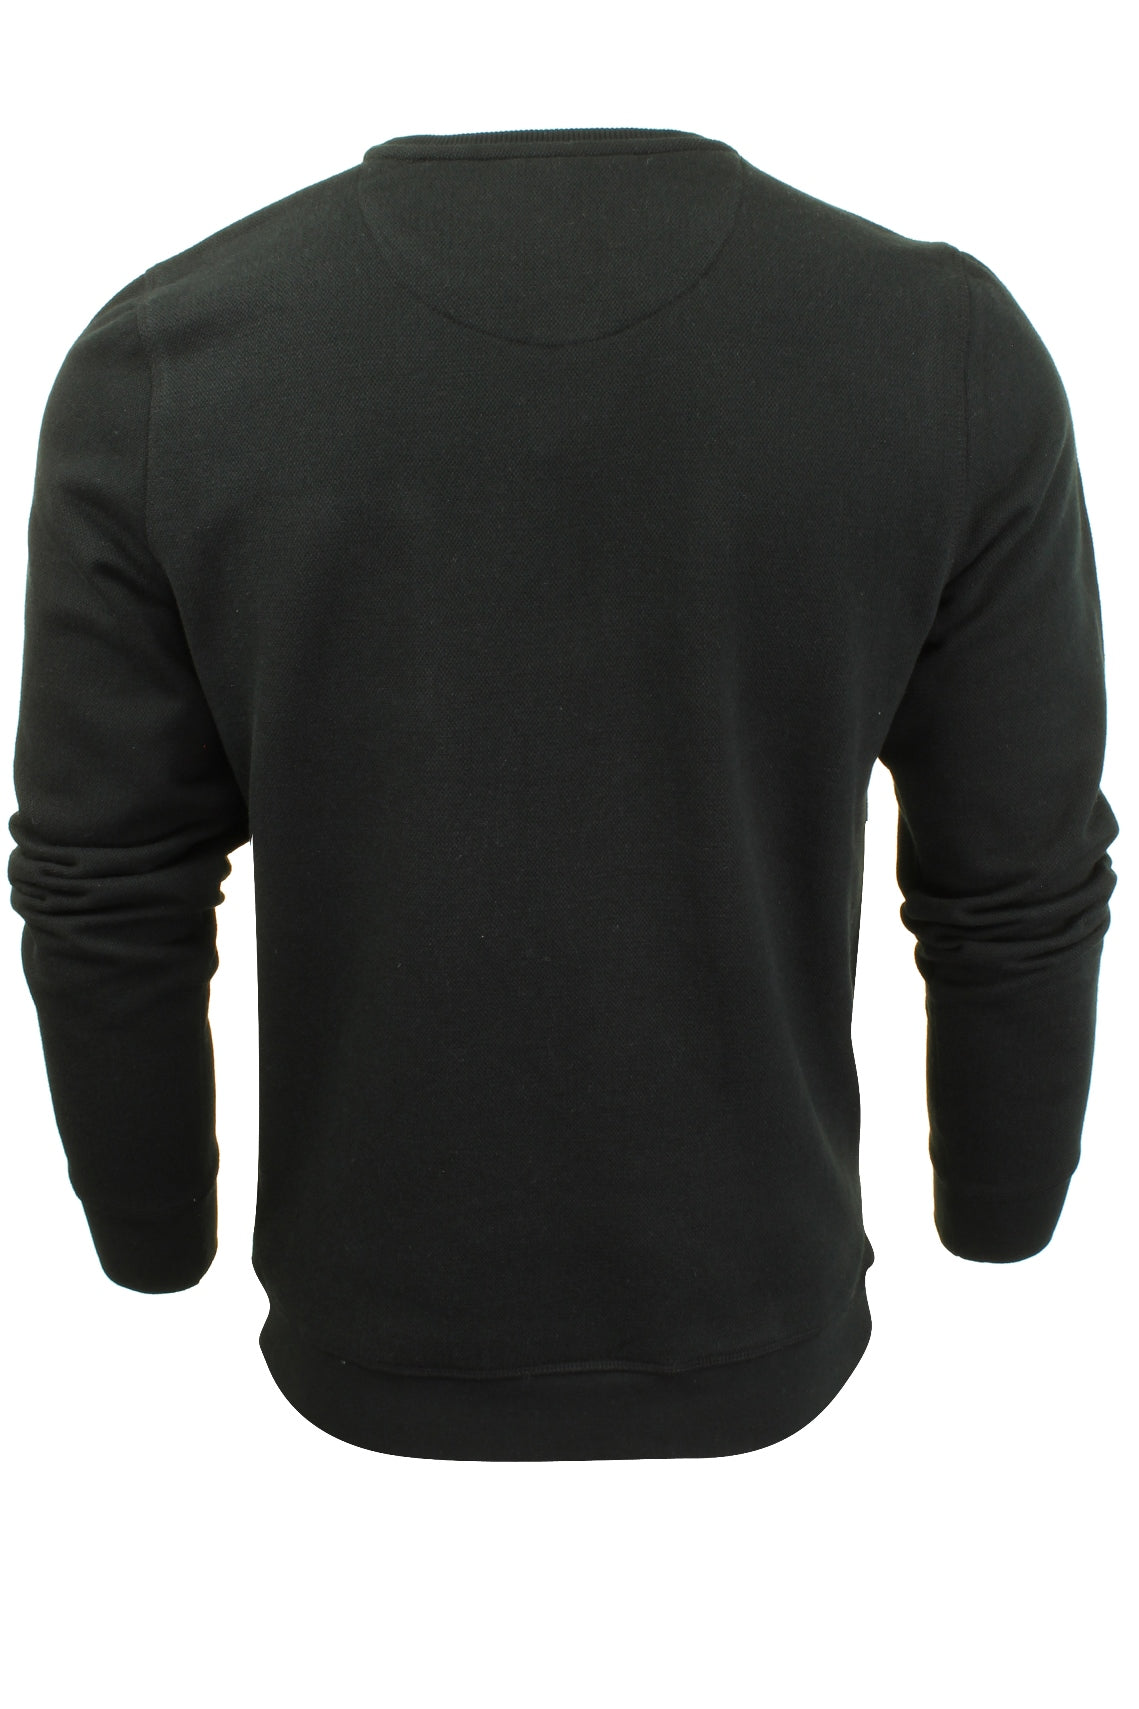 Men's Jumper Cotton Mix Fashion Sweater Jumper by Dissident-3